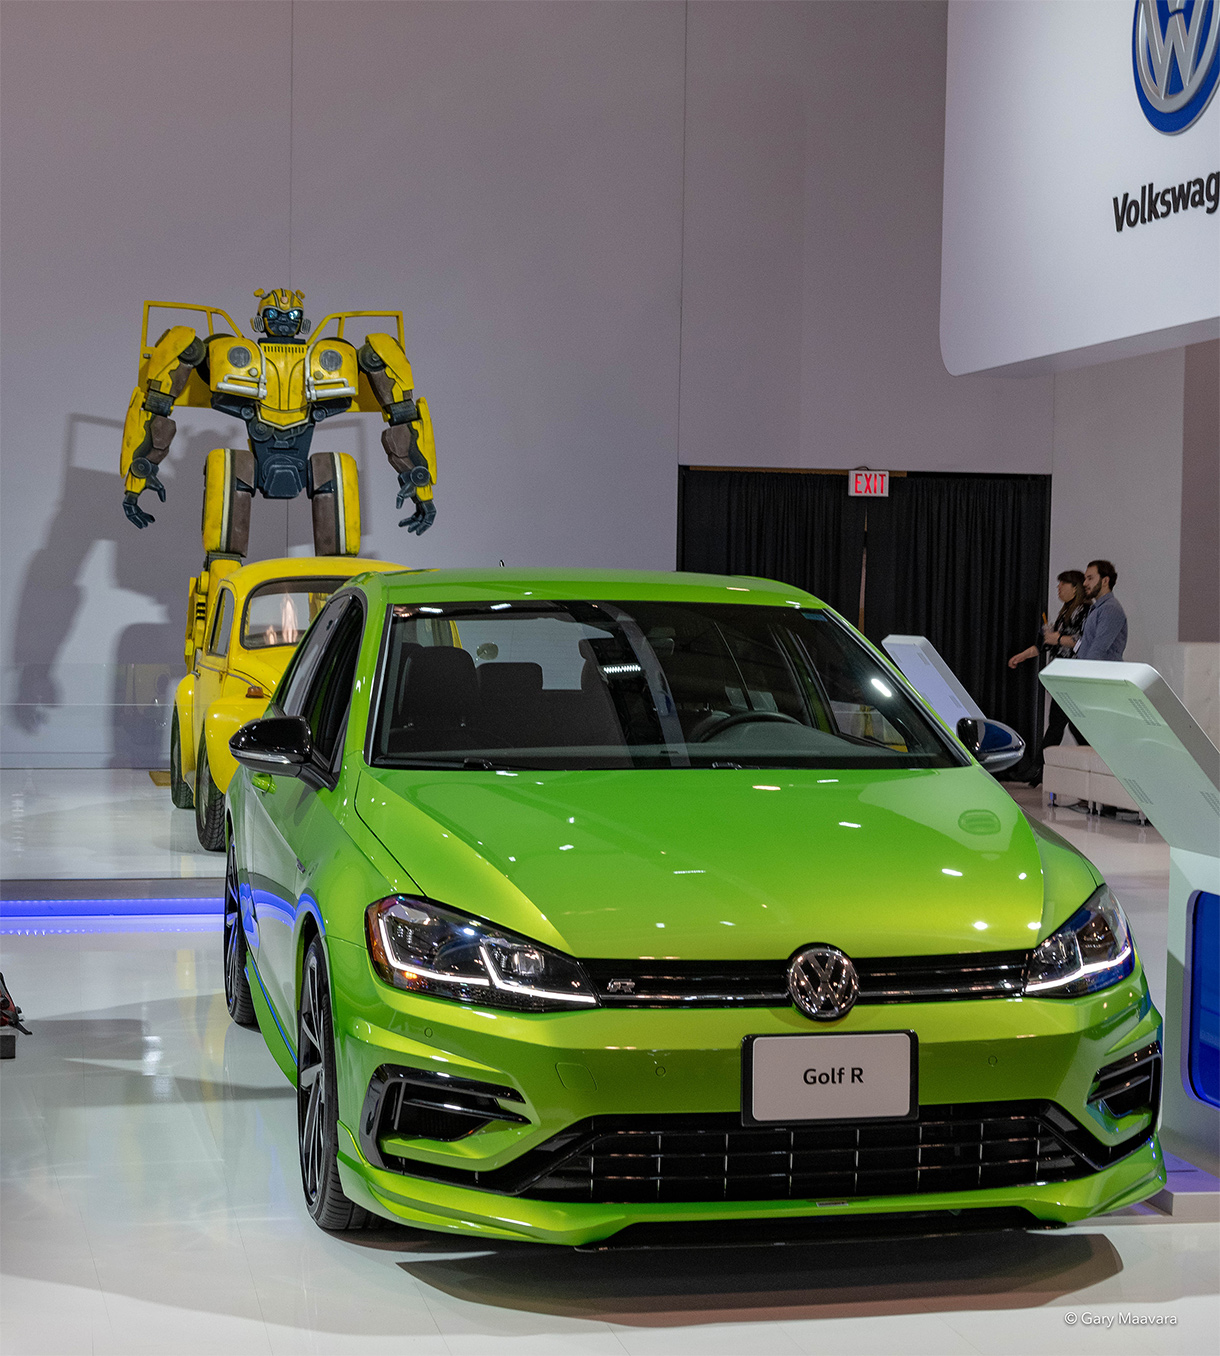 TrackWorthy - CIAS_VW Golf R with Beetle and Transformer